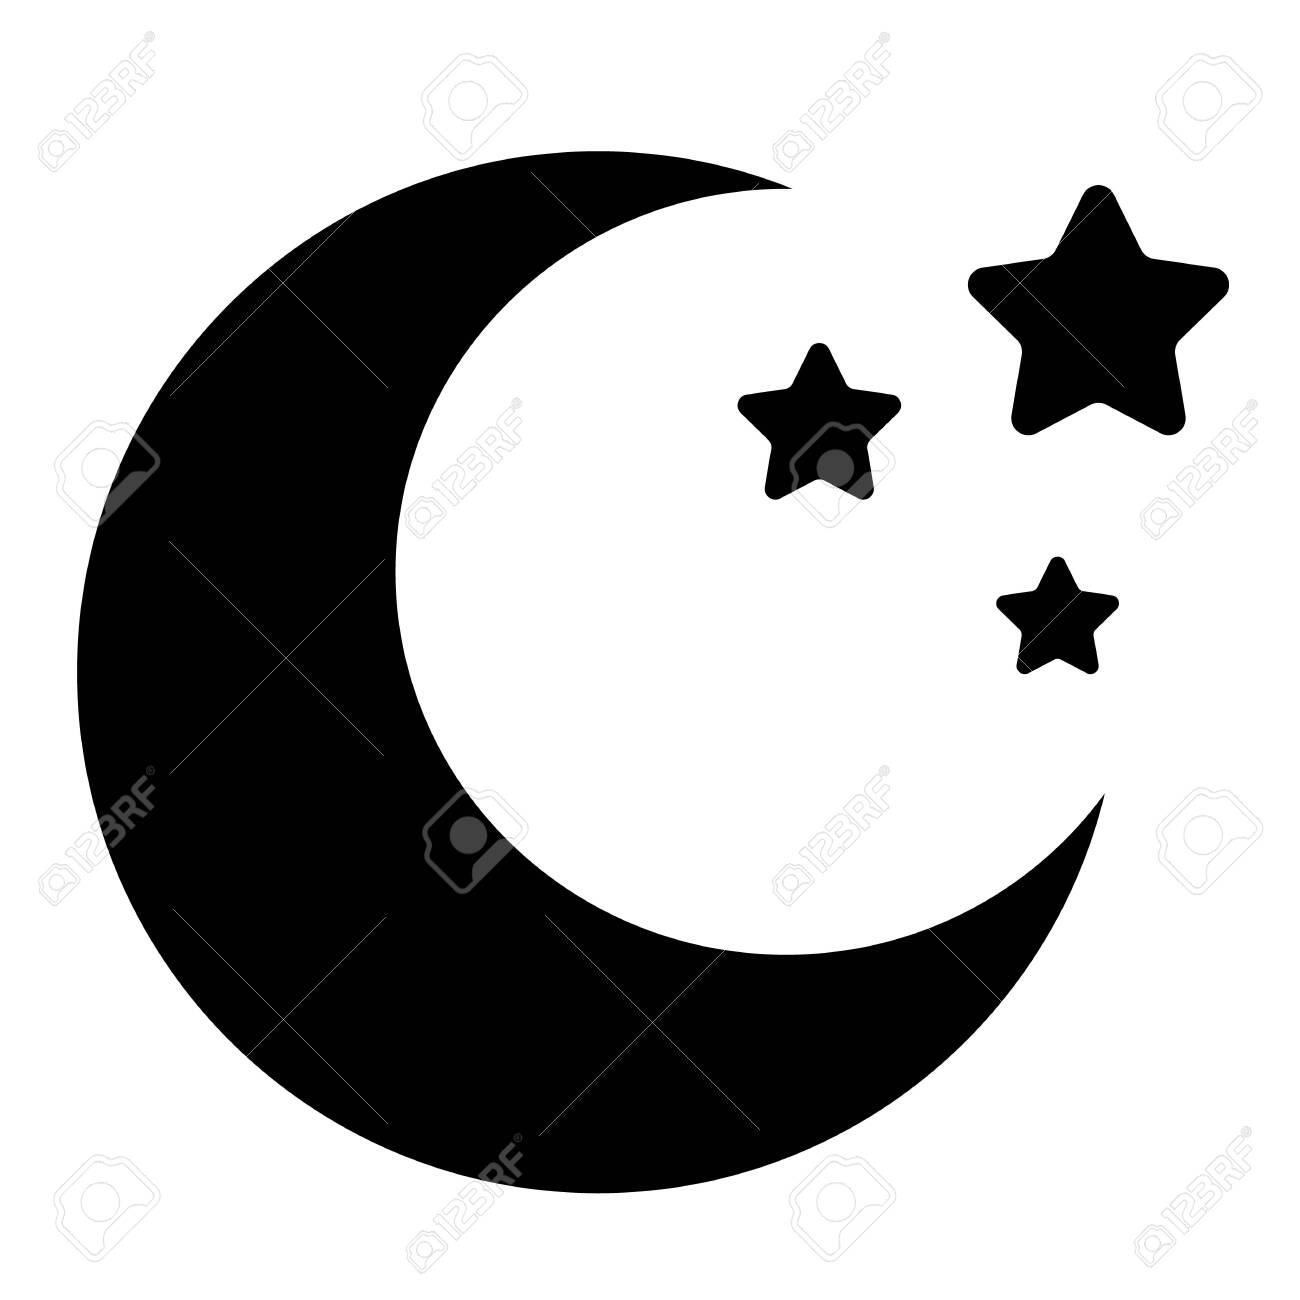 moon icon on white background flat style black crescent moon royalty free cliparts vectors and stock illustration image 148123870 moon icon on white background flat style black crescent moon